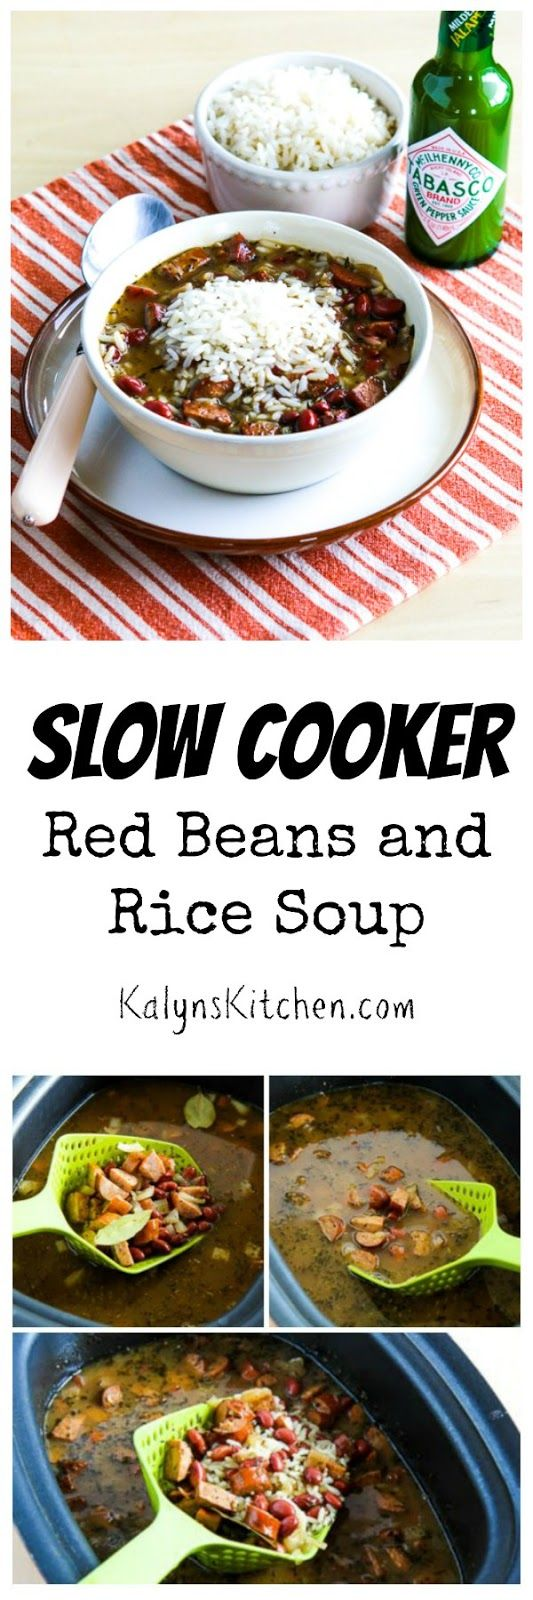 Slow Cooker Red Beans and Rice Soup is one of my favorite slow cooker soups! This uses healthy chicken Andouille sausage and it's just spicy enough to be interesting.  (Gluten-Free, Can Freeze) [from KalynsKitchen.com]